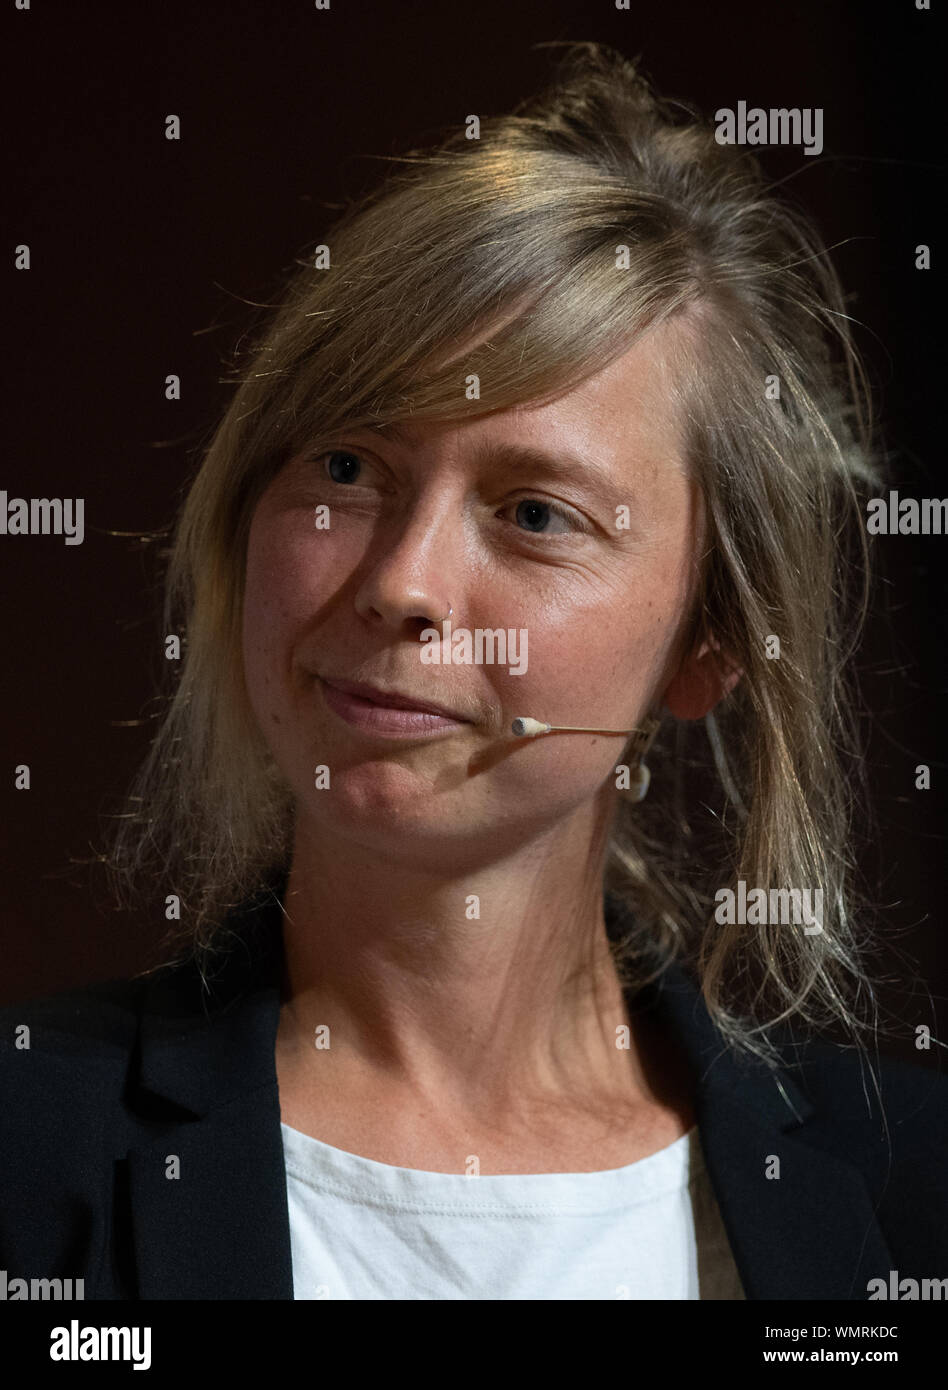 """Berlin, Germany. 05th Sep, 2019. Luise Neumann-Cosel, Campact Campaign Team Leader, sits in a panel discussion on """"Climate Crisis and Future Mobility"""". Credit: Christophe Gateau/dpa/Alamy Live News Stock Photo"""